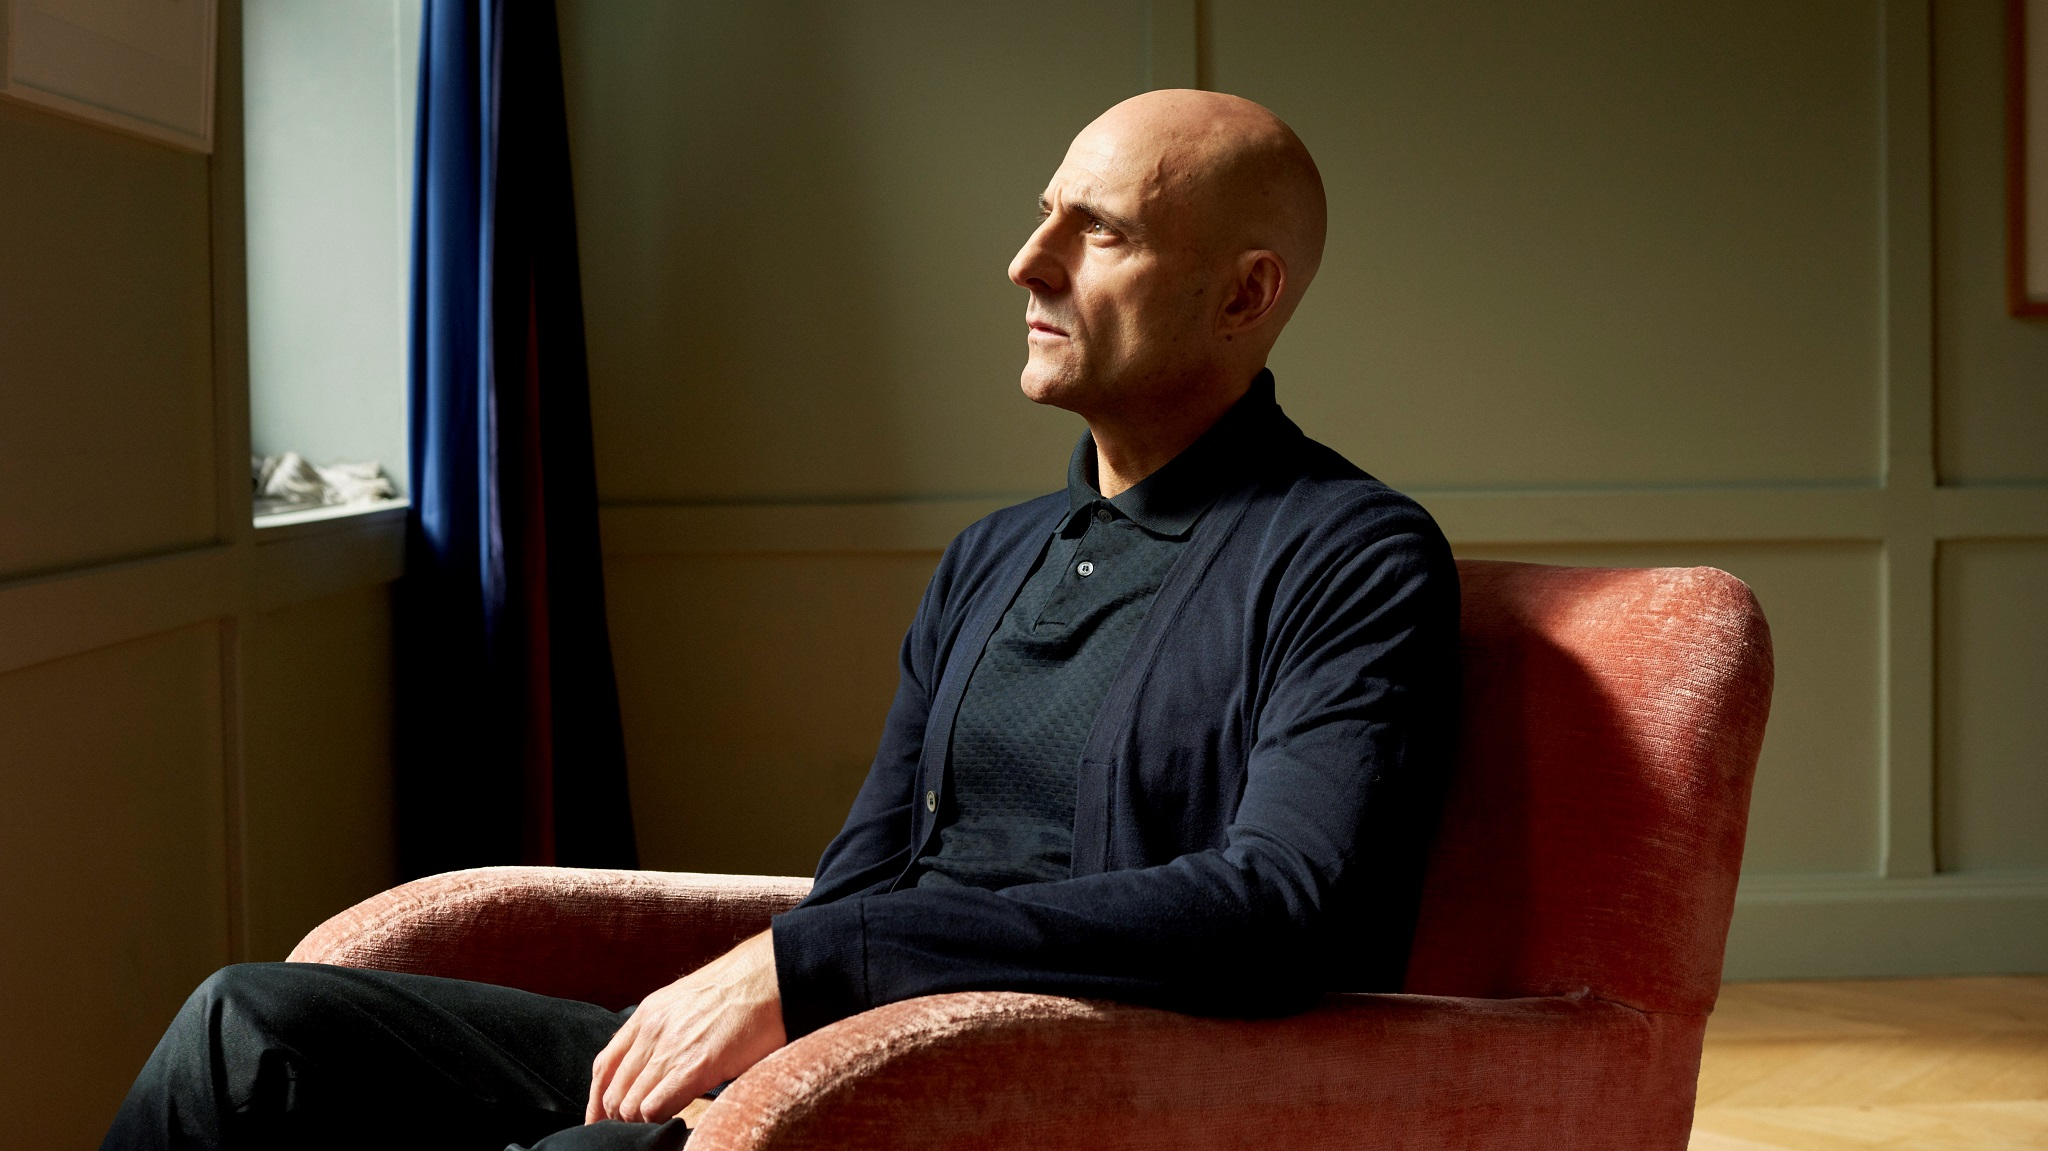 Kingsman' actor Mark Strong on taking the helm of new drama